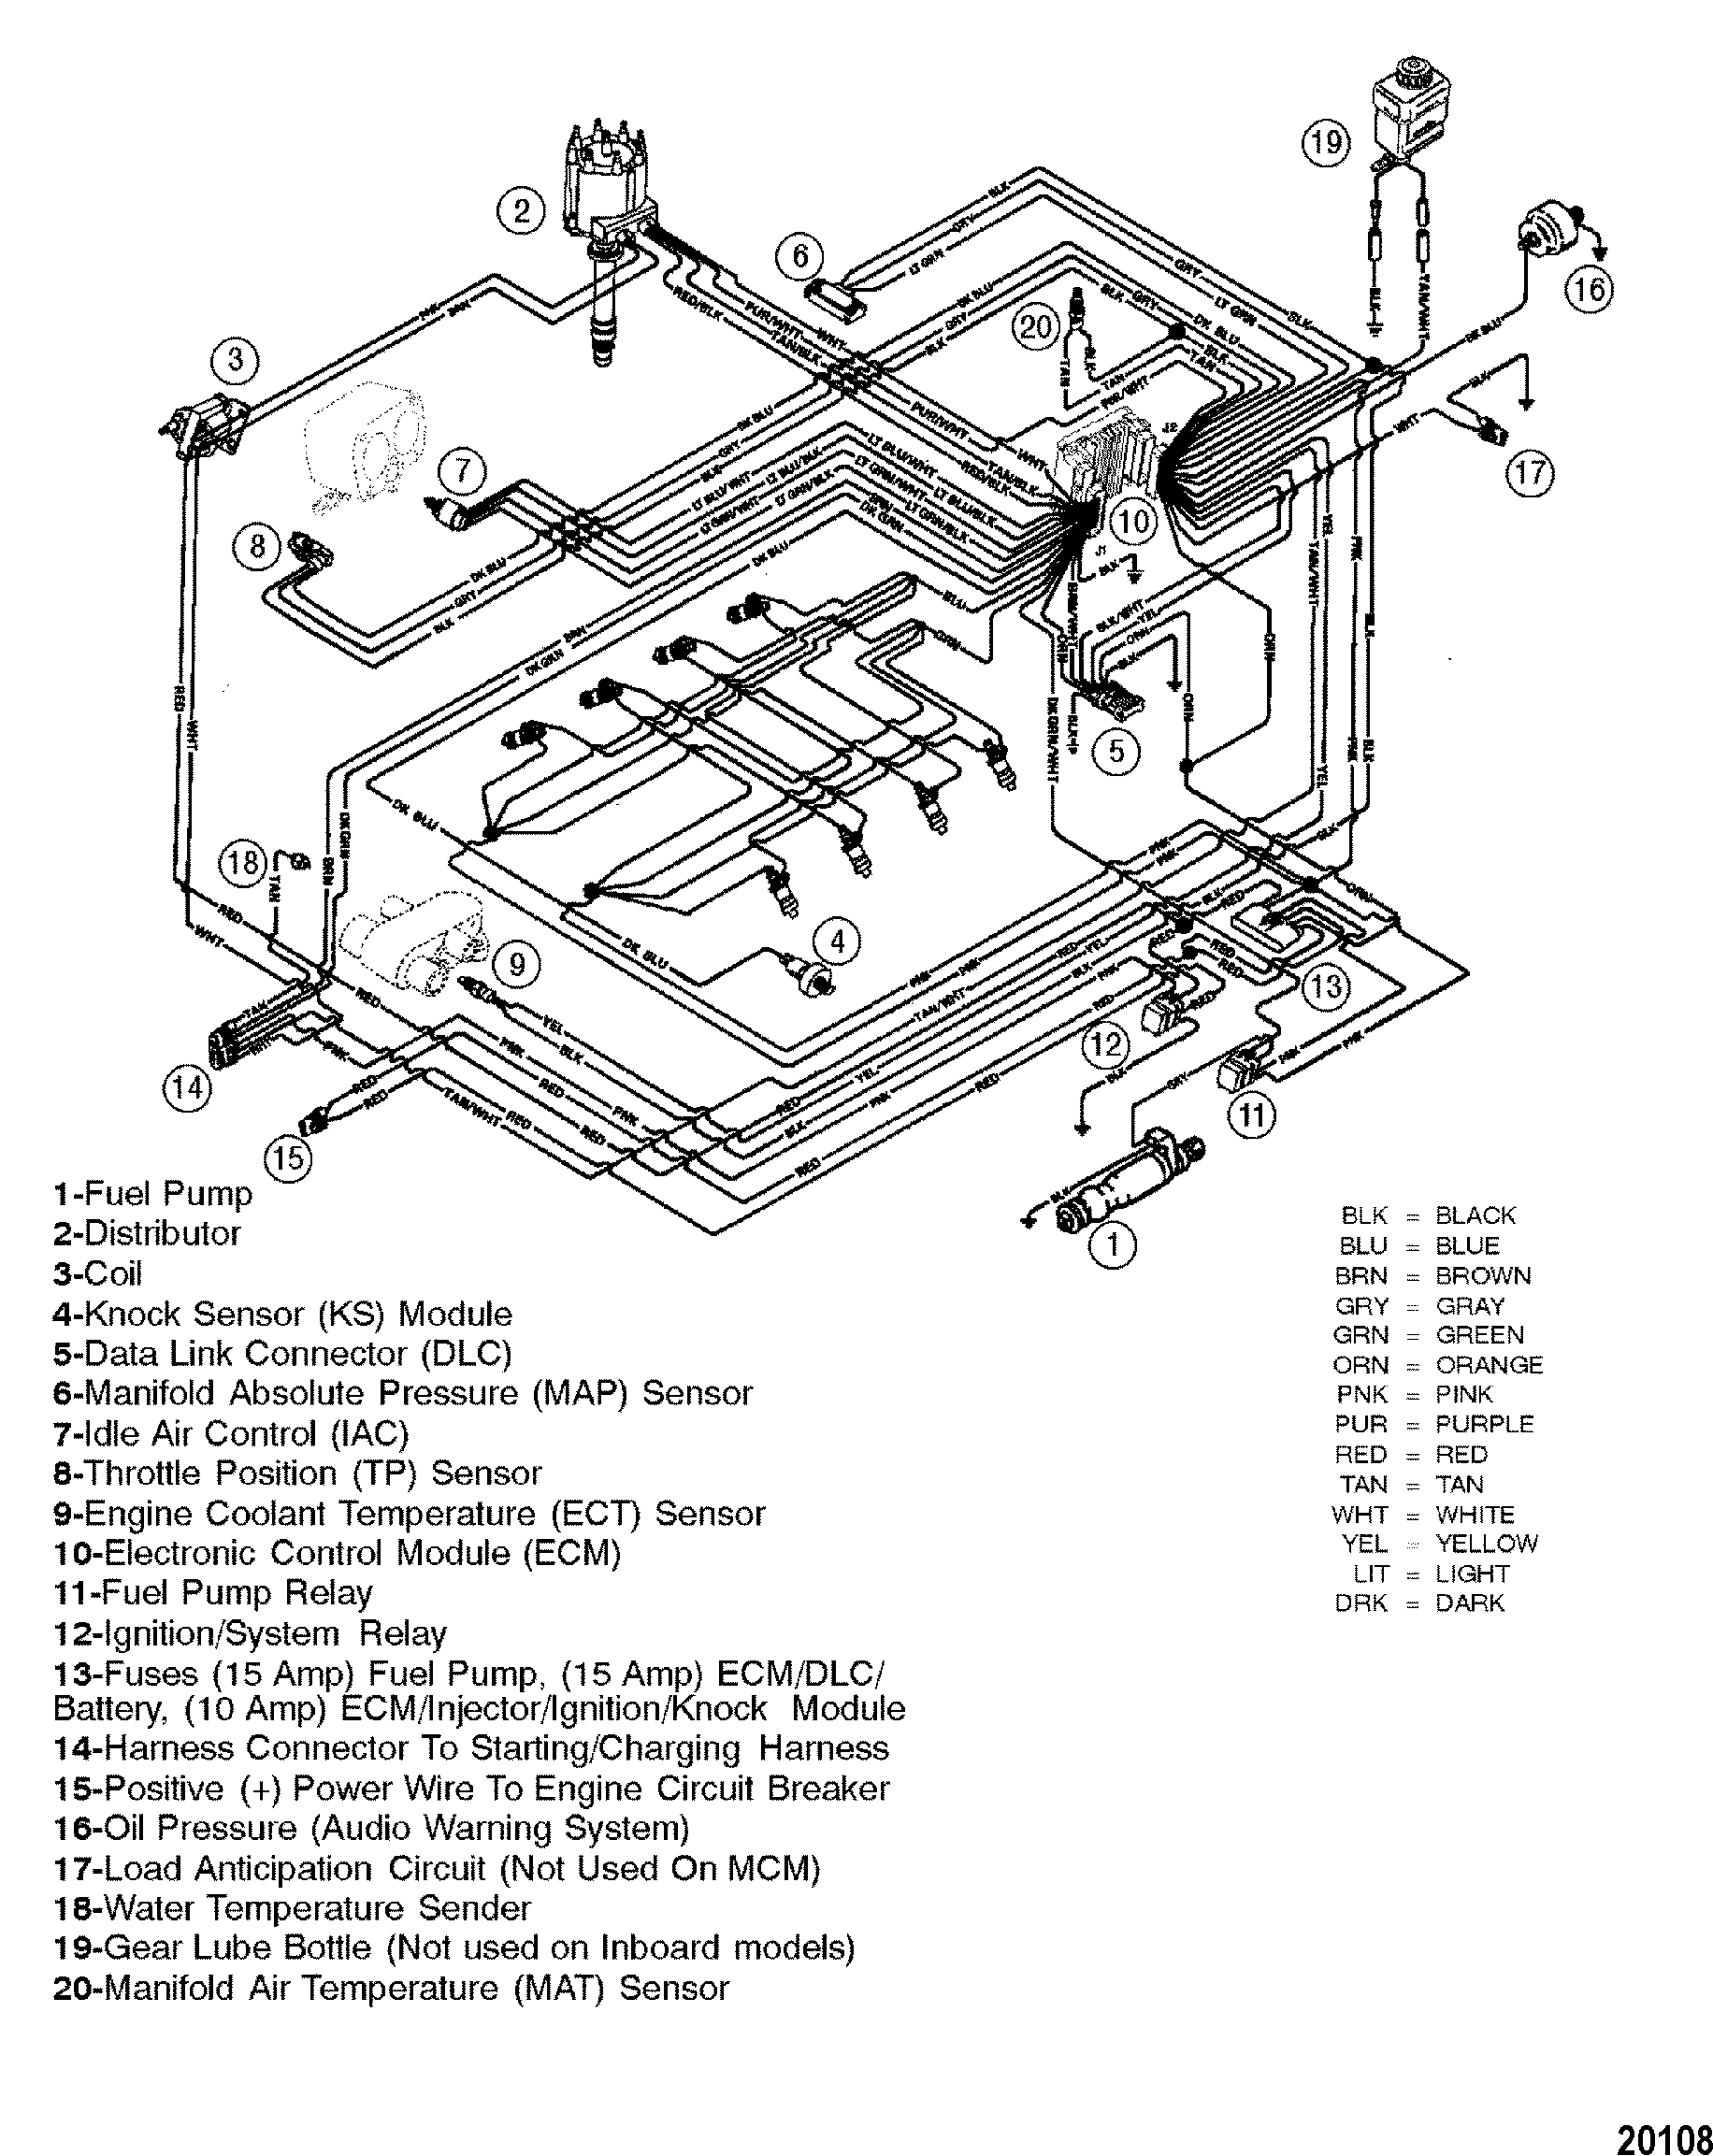 Mercruiser Wiring Diagram 5 7 - Great Installation Of Wiring Diagram • - Mercruiser 5.7 Wiring Diagram